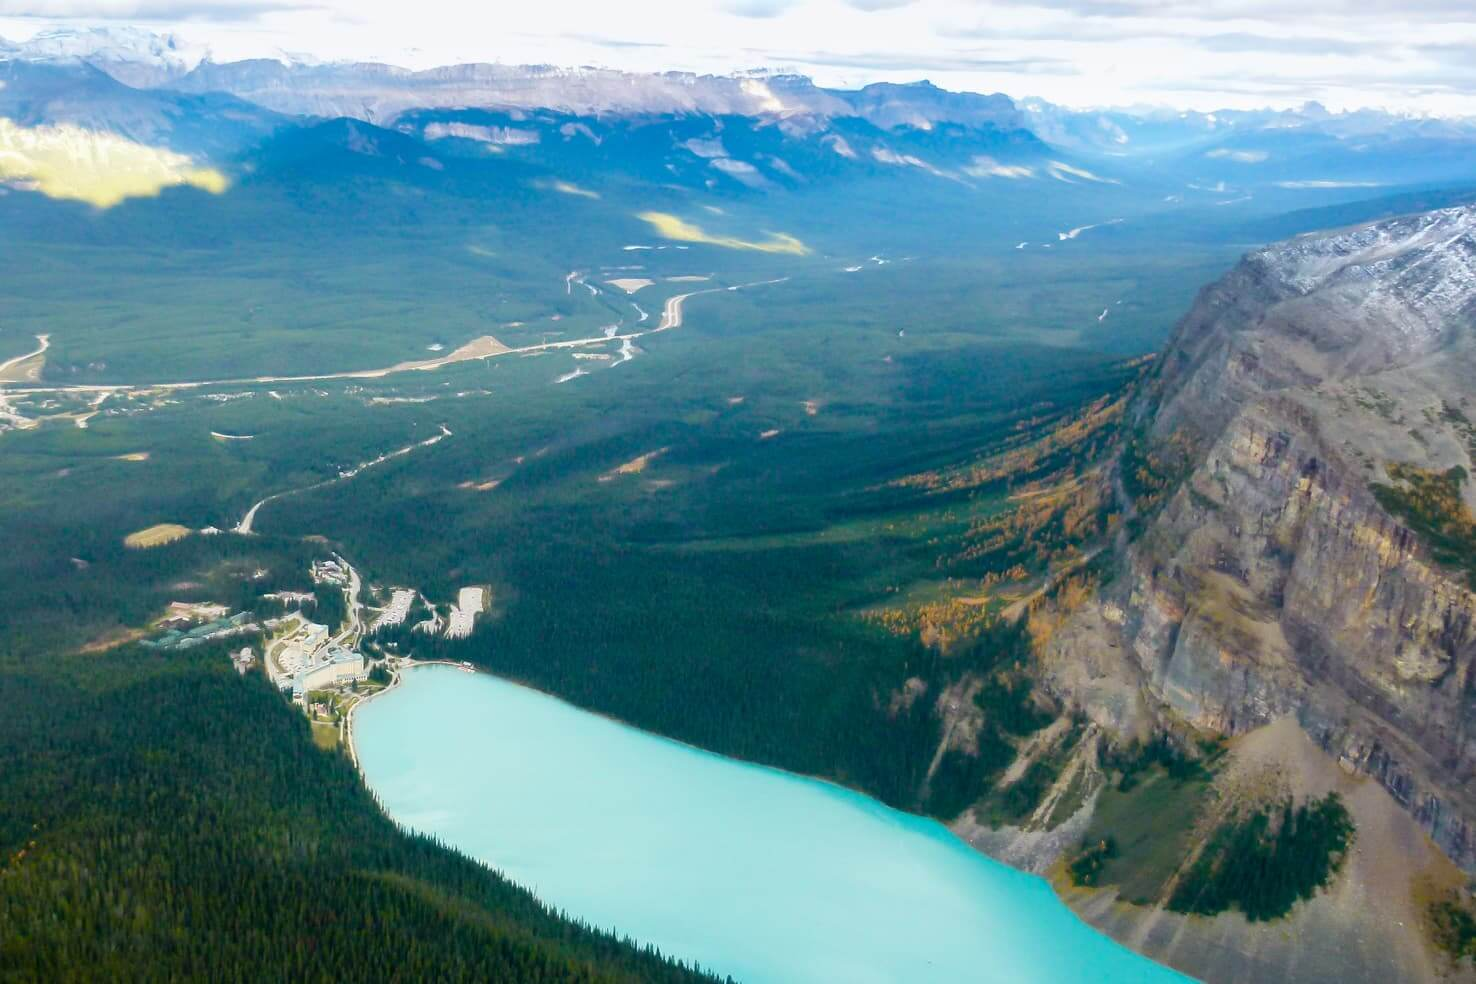 100 best things to do in Banff National Park, Canada - Get a bird's eye view of Lake Louise